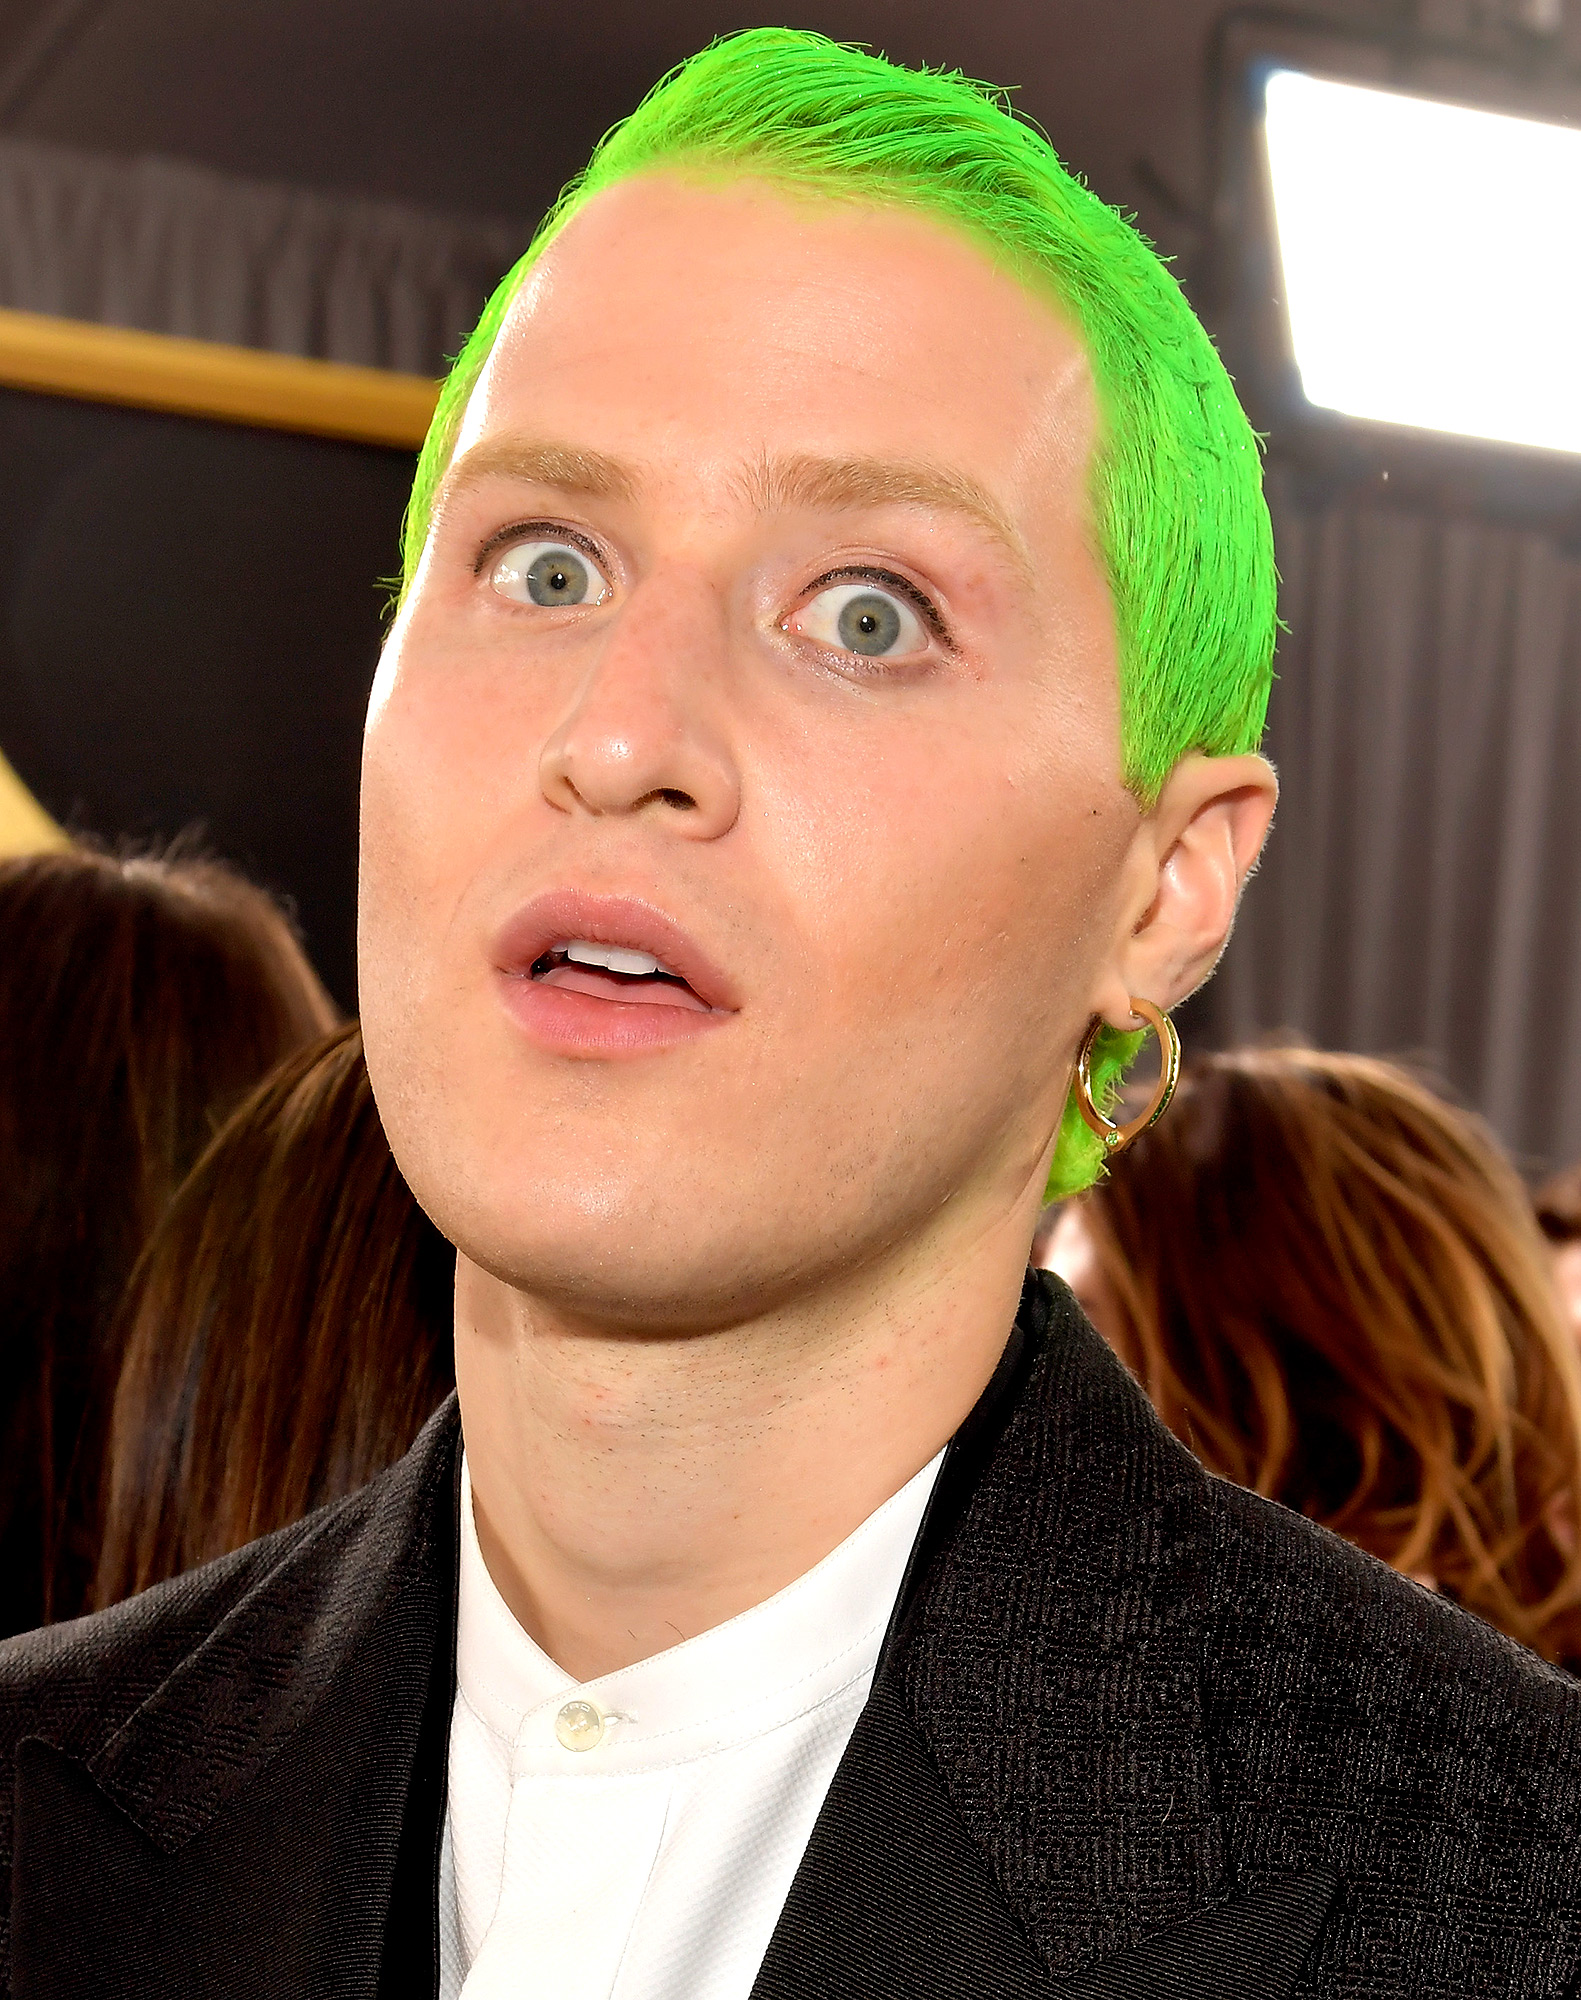 Mike Posner's Green Hair